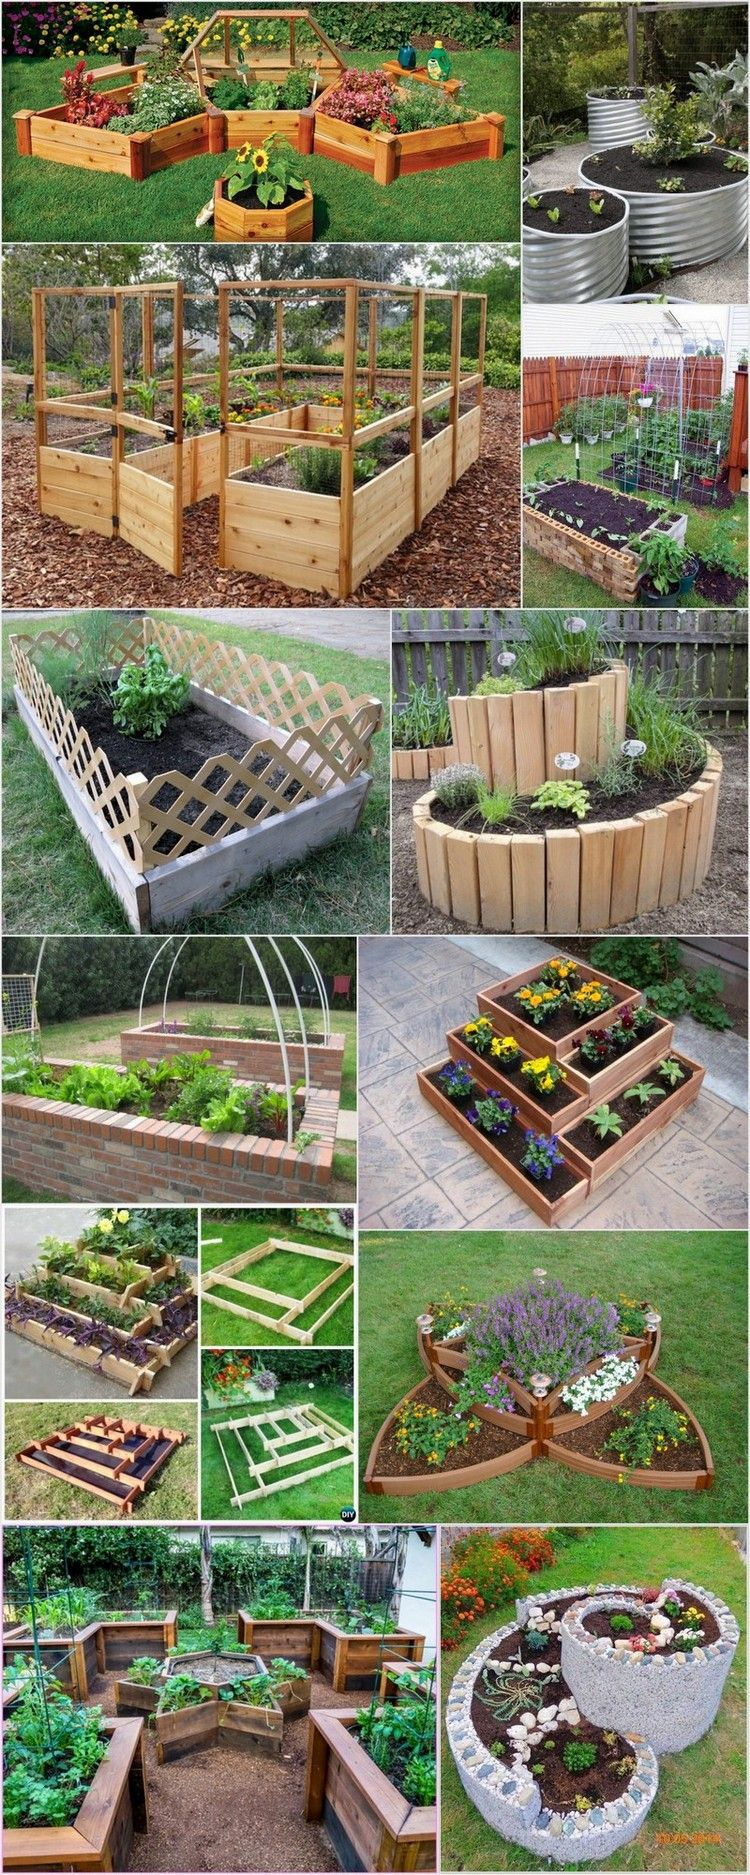 Inexpensive Raised Garden Bed Ideas to Increase the Value of Your ...